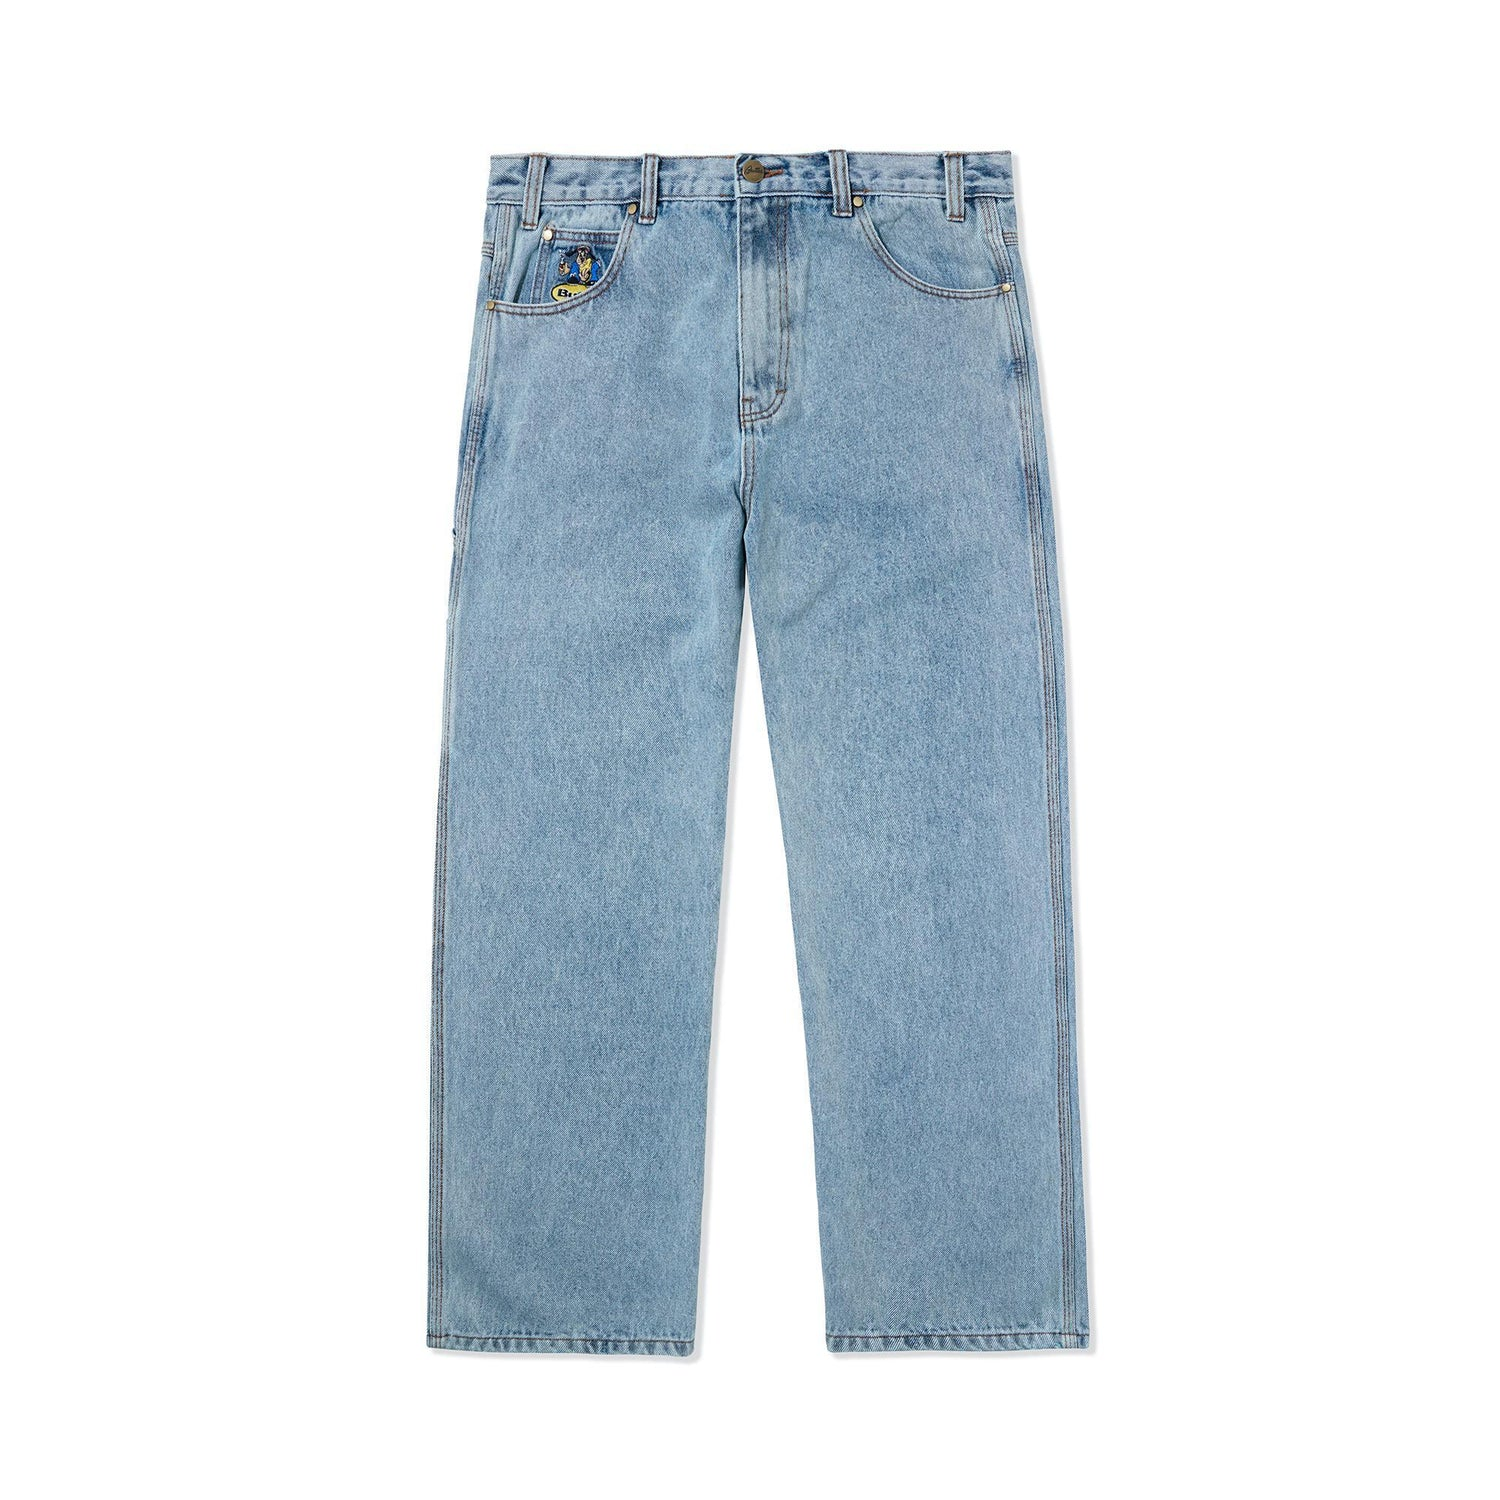 Homeboy Denim Pants, Washed Light Blue